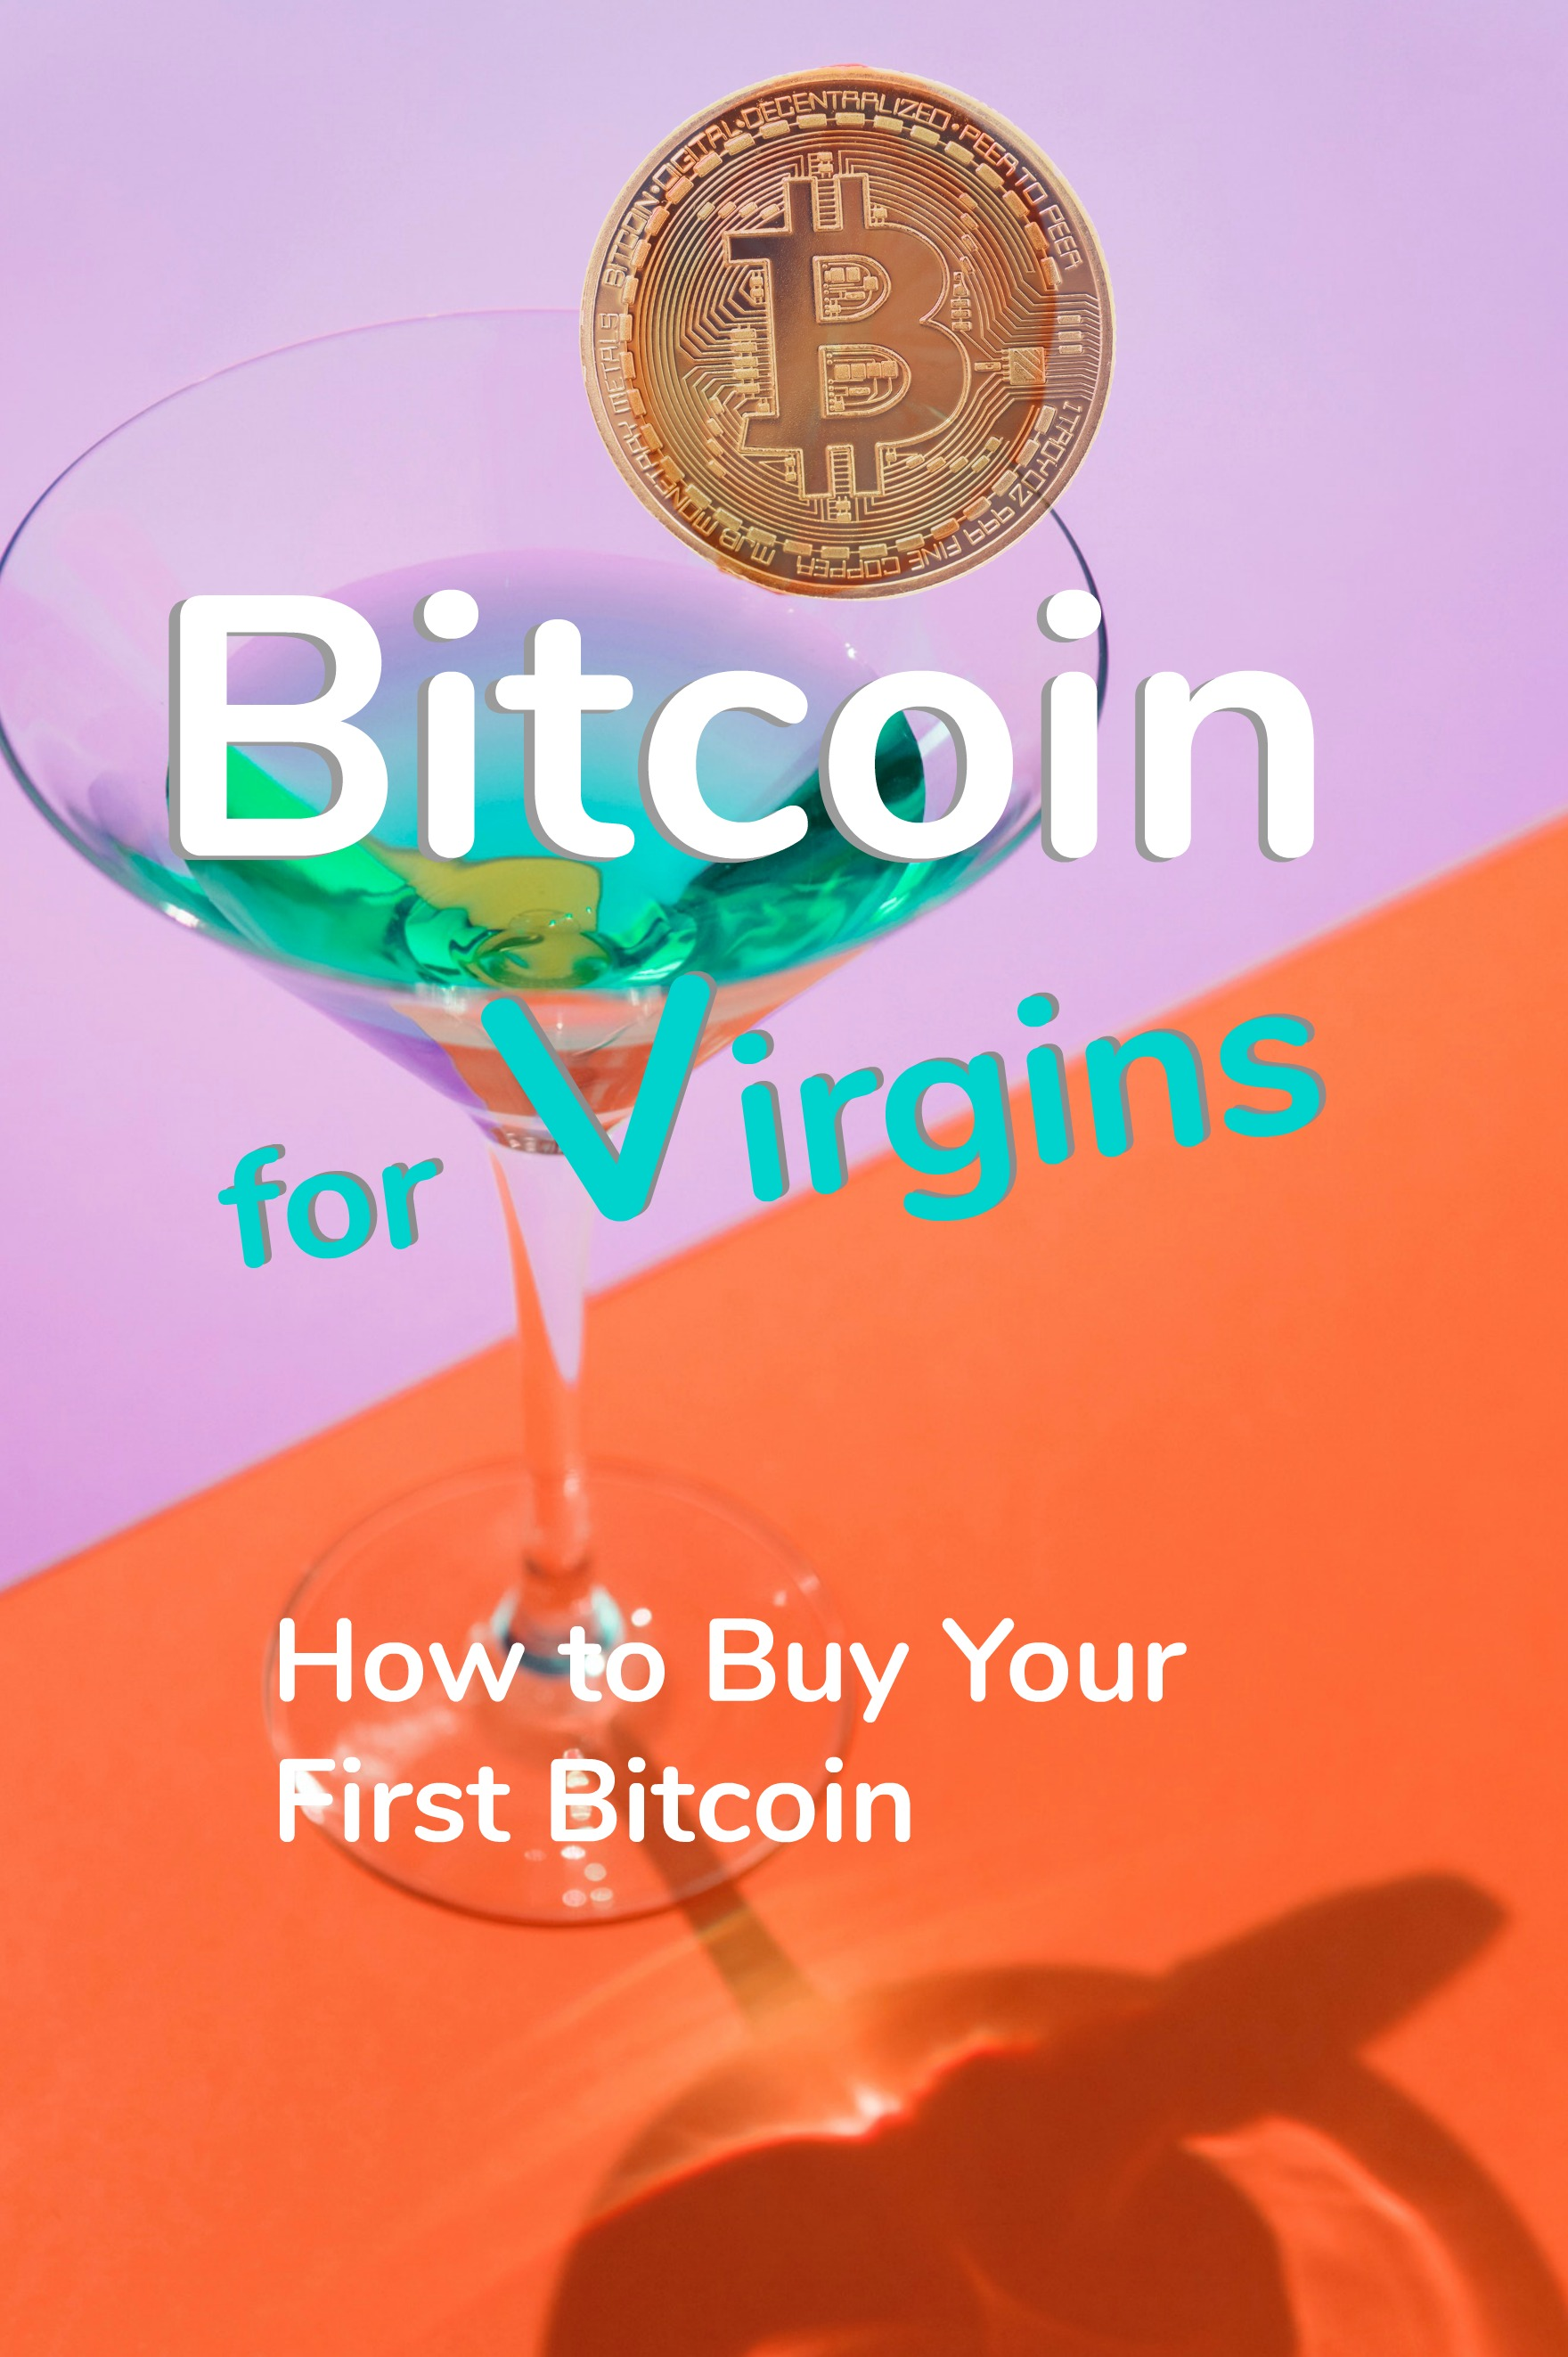 BITCOIN FOR VIRGINS: The 9 Things You Need to Know Before Buying Your First Bitcoin